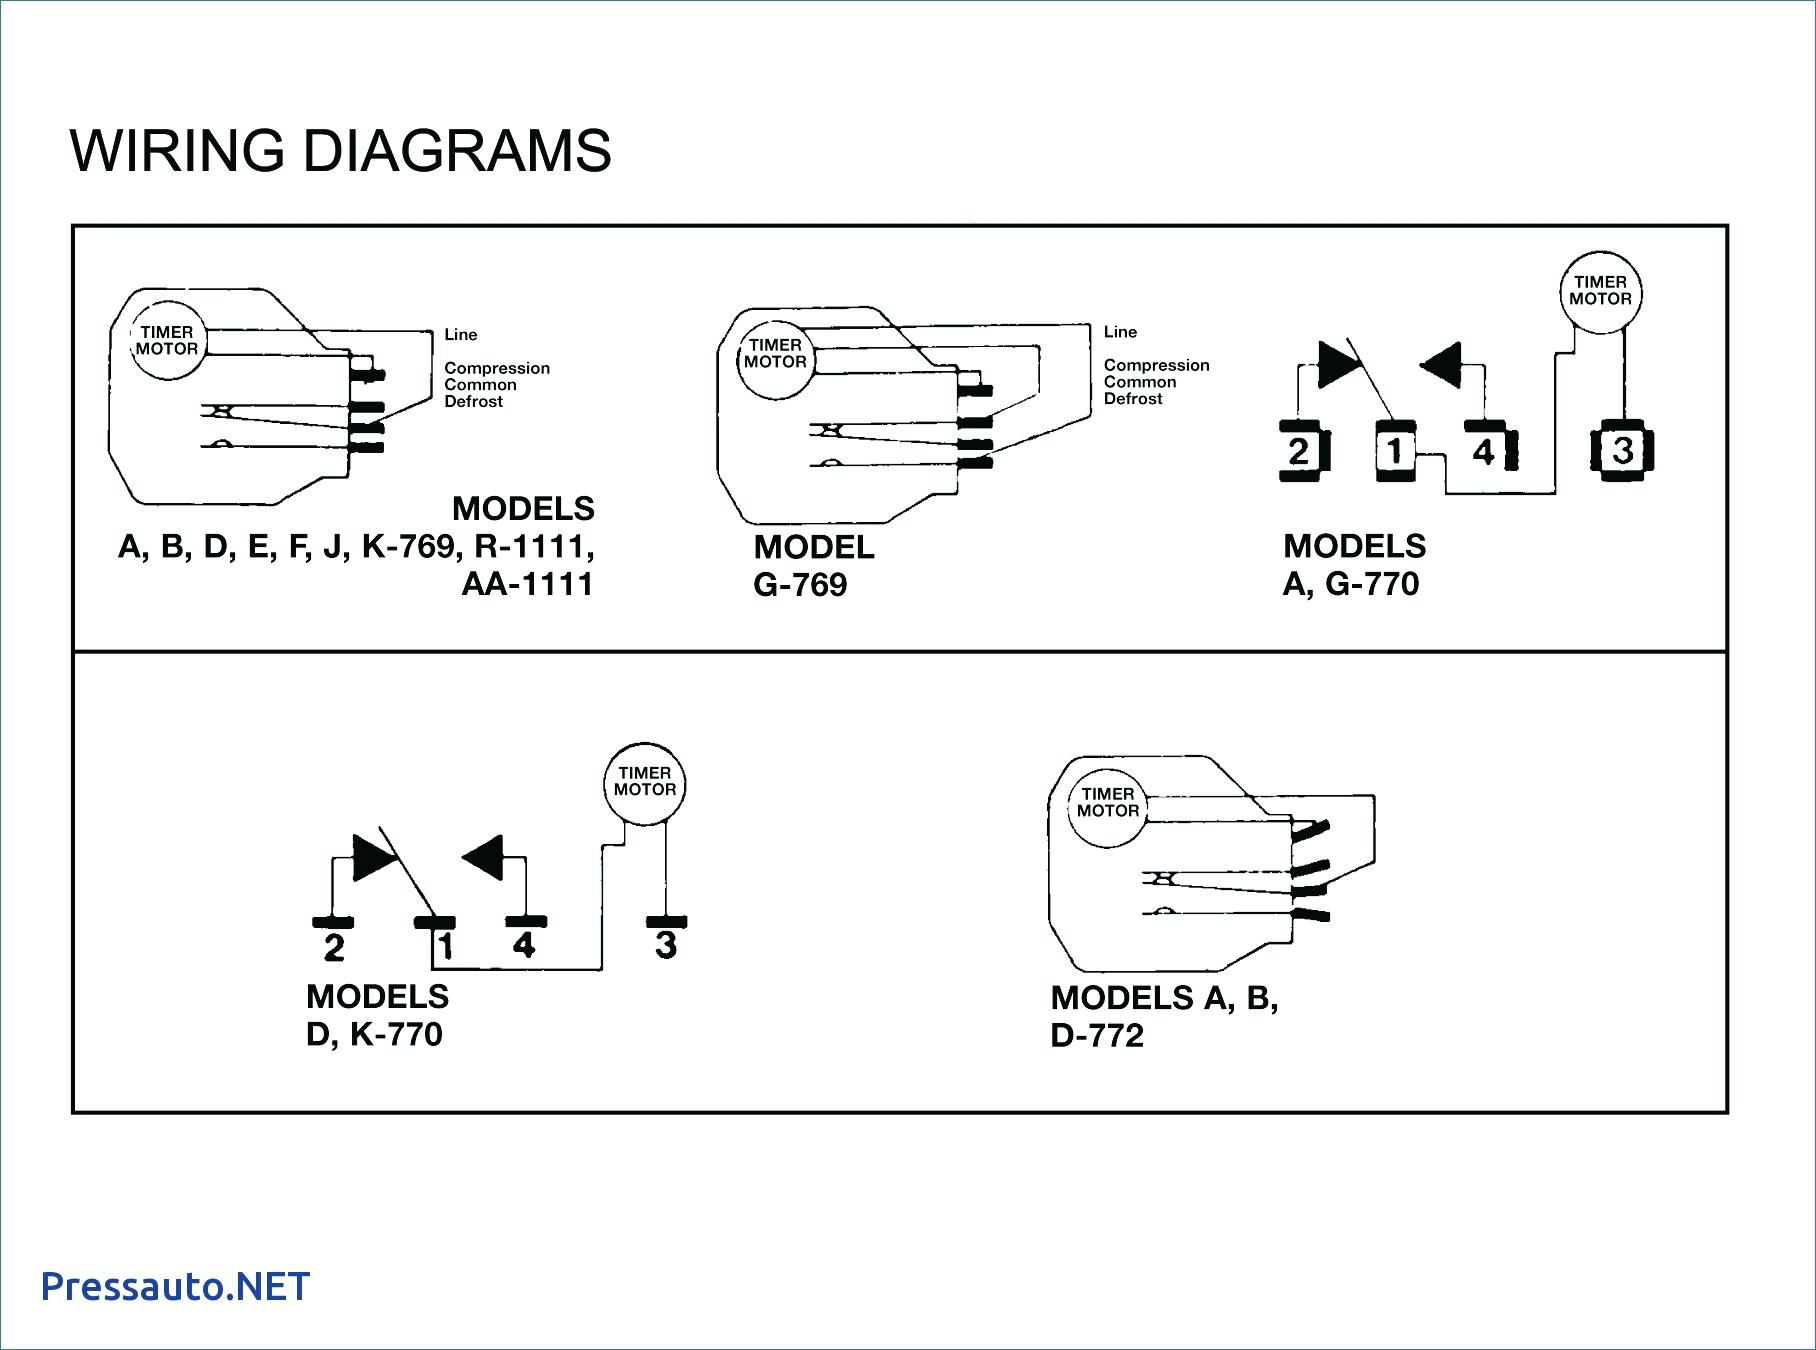 russell evaporator wiring diagram Collection-Russell Evaporator Wiring Diagram Wiring Diagram • 11-d